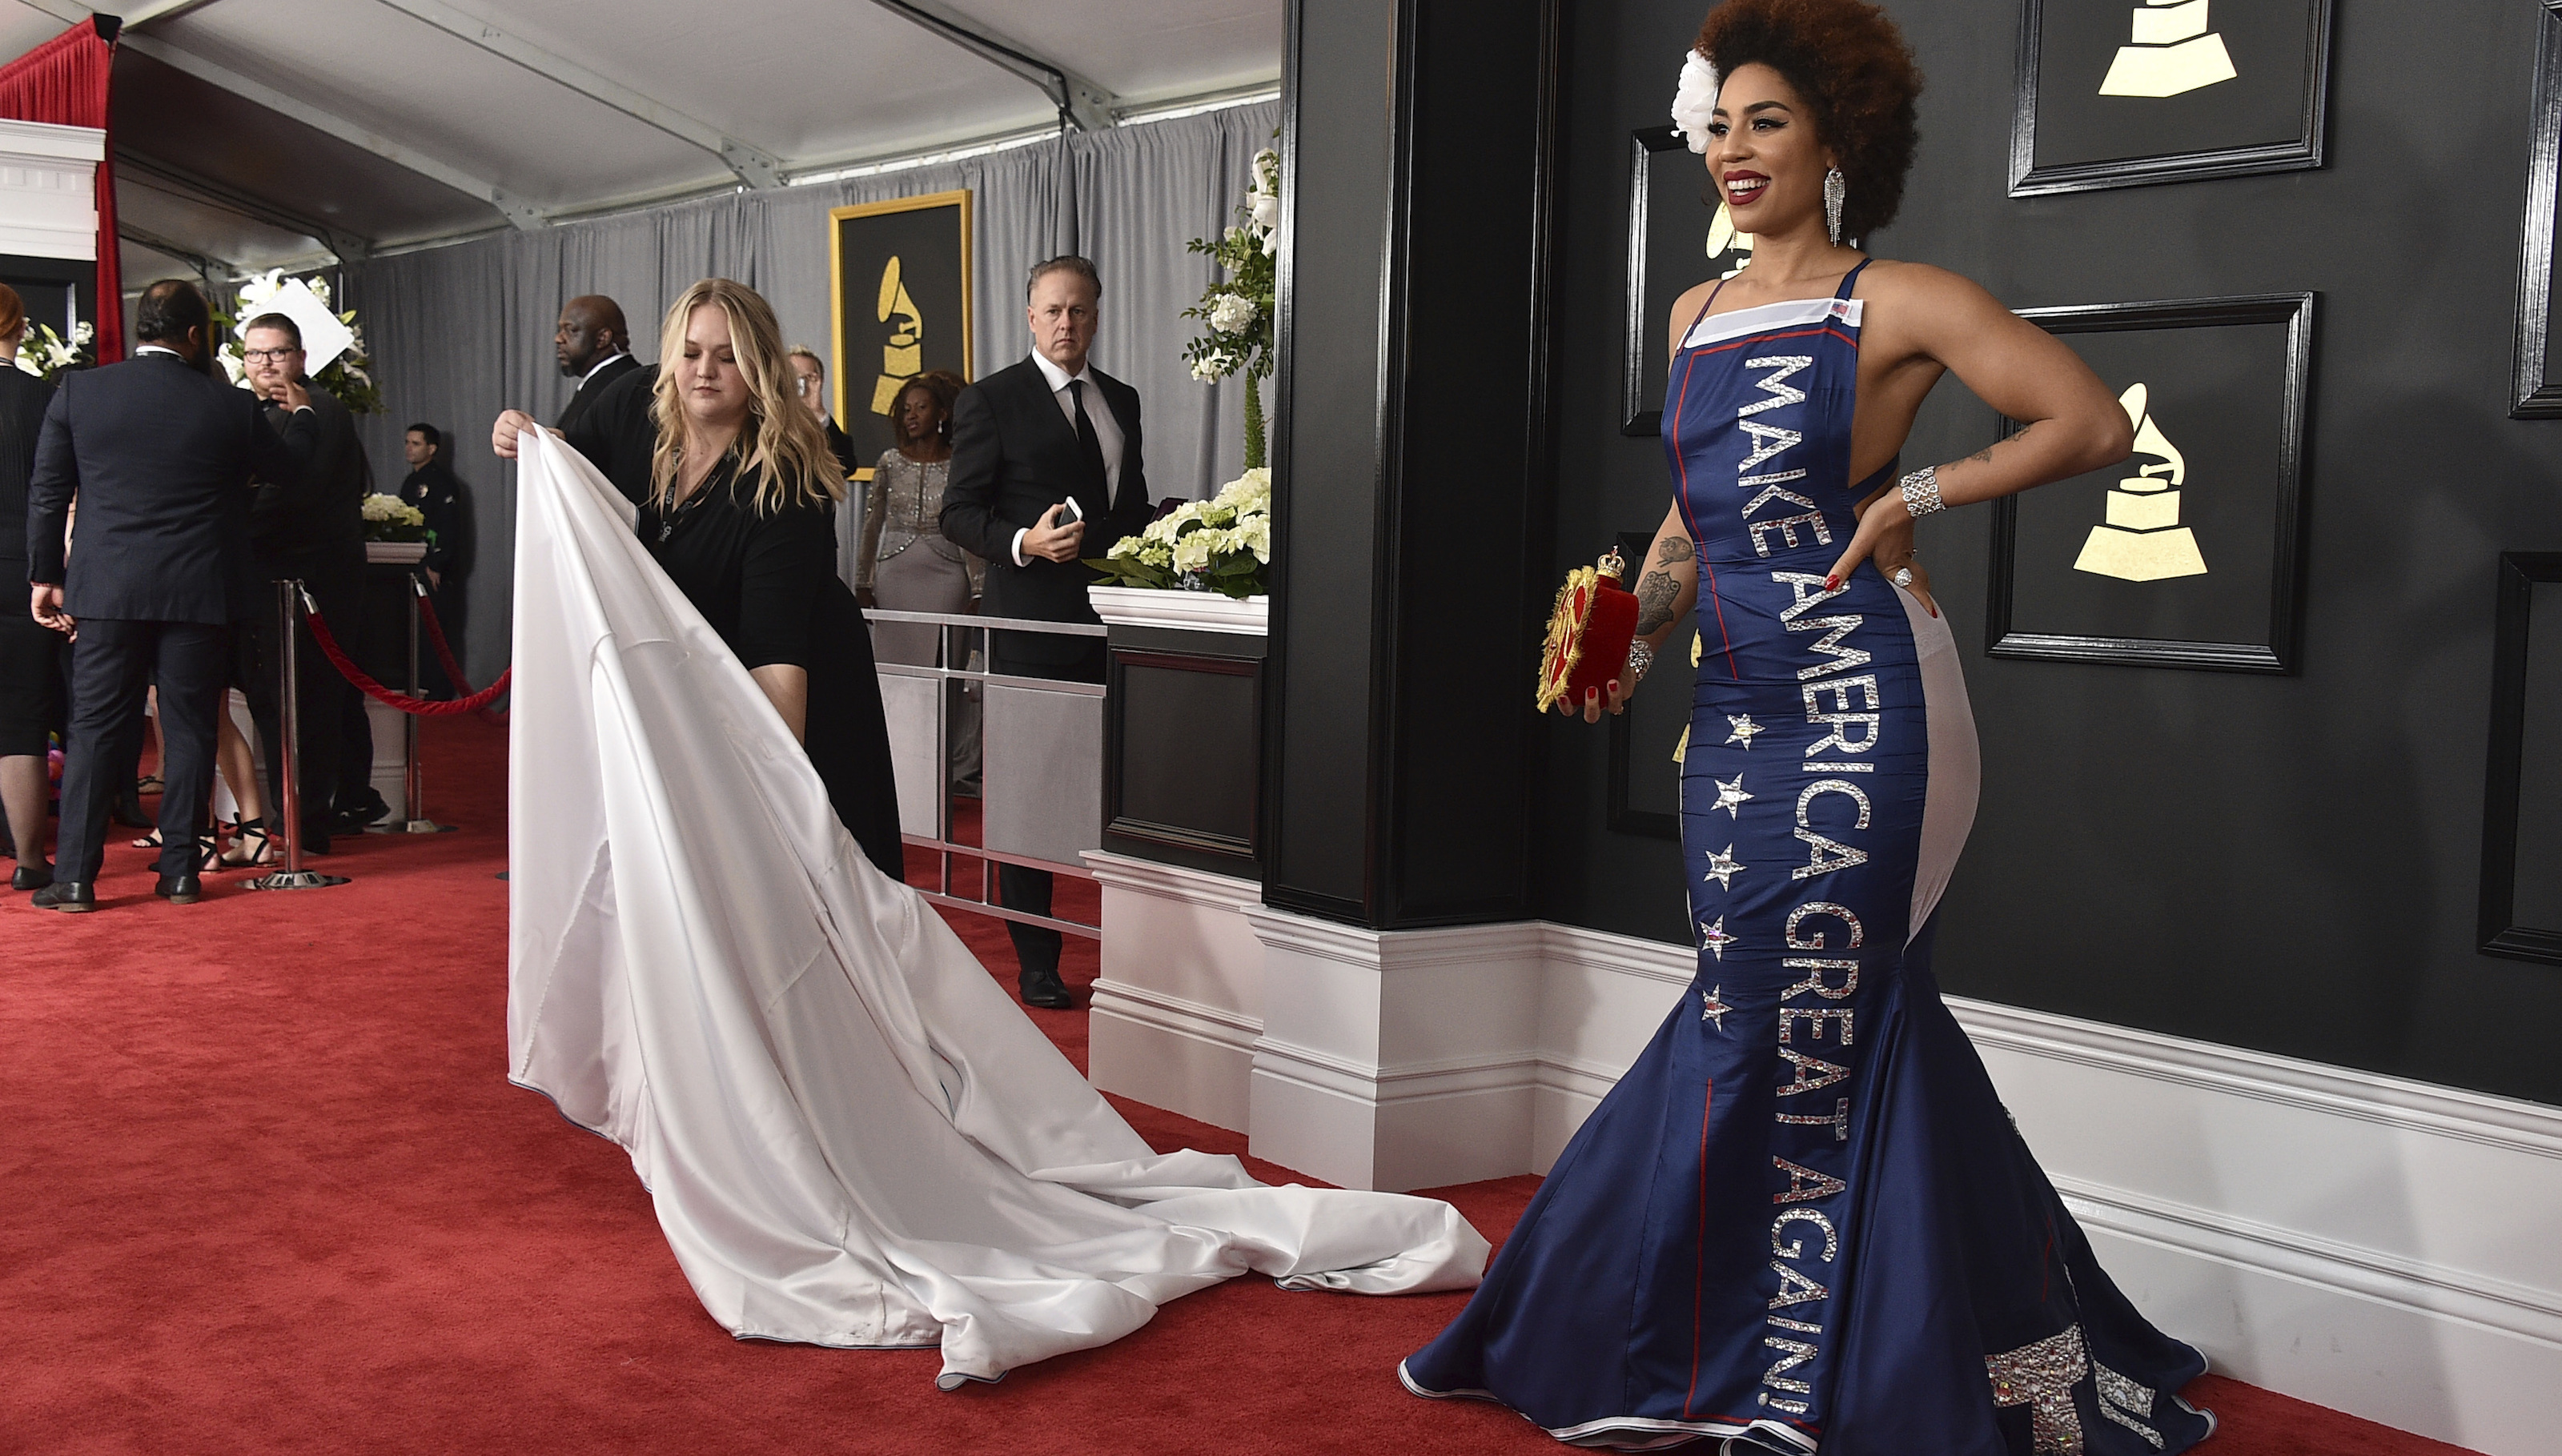 Singer Joy Villa?s sales rocket as Trump supporters get a new nobody to fawn over